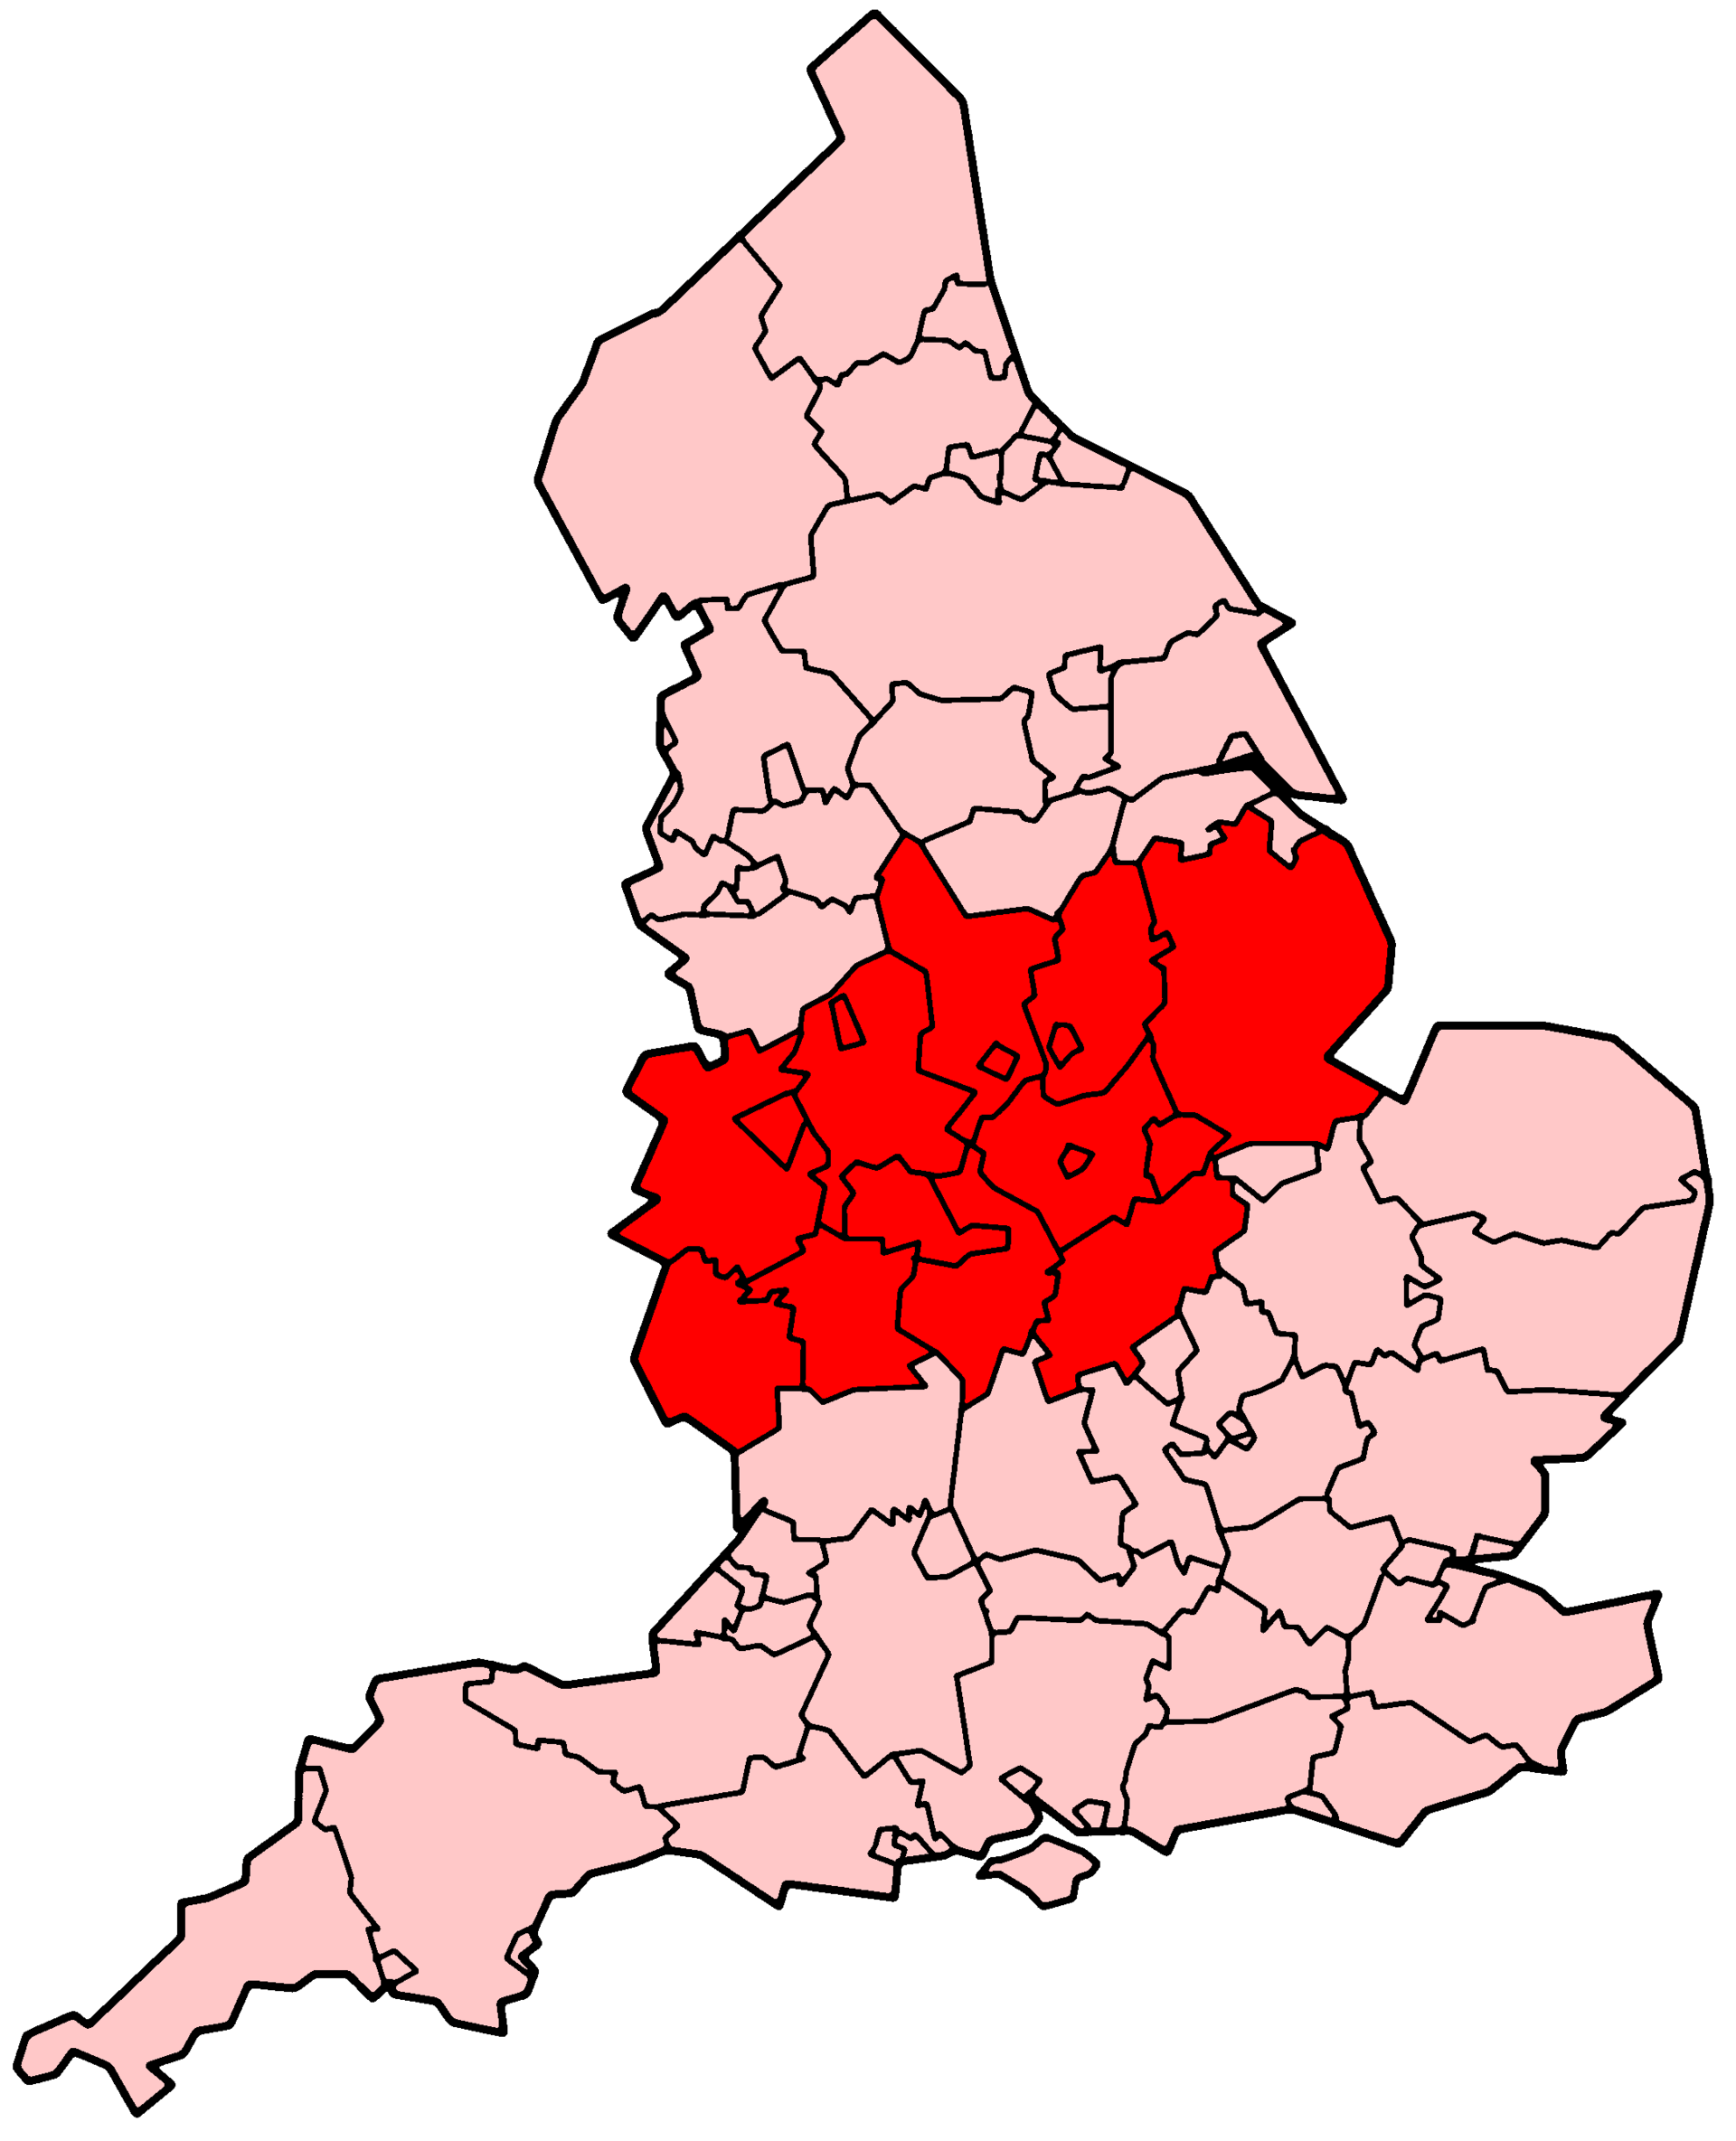 The East Midlands and West Midlands regions of England